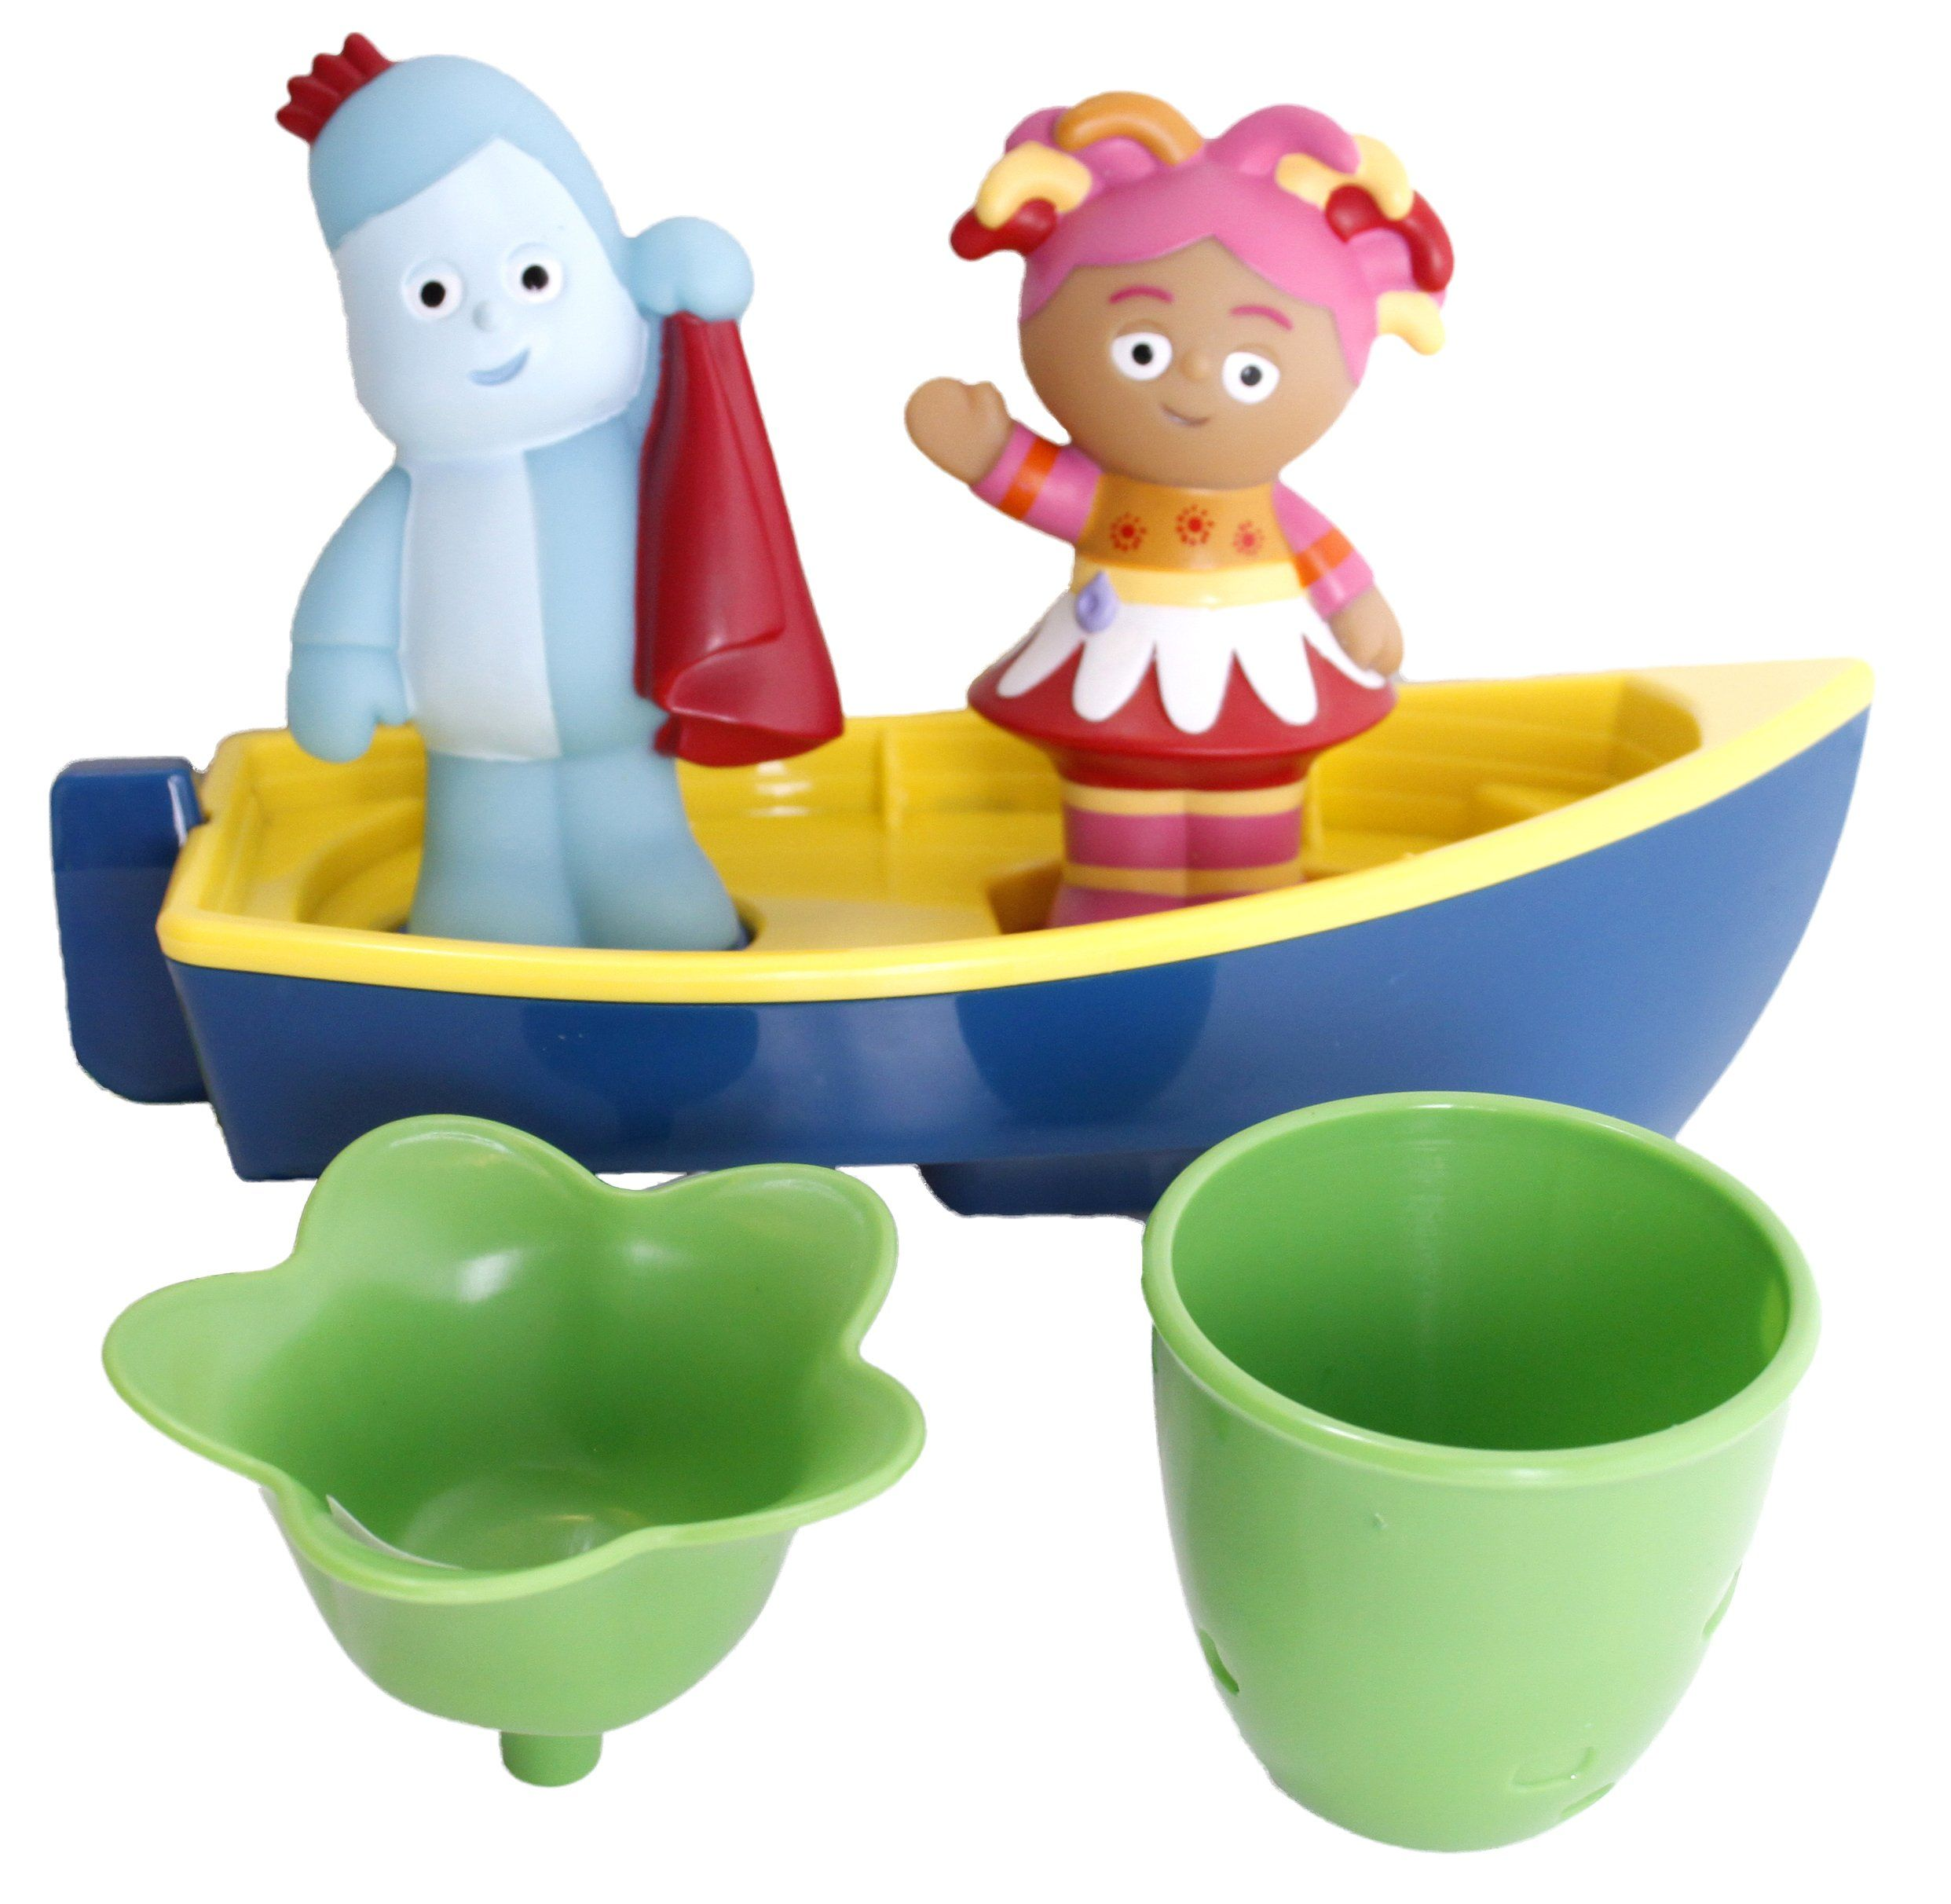 In The Night Garden Iggle Piggle's Floaty Boat Playset In